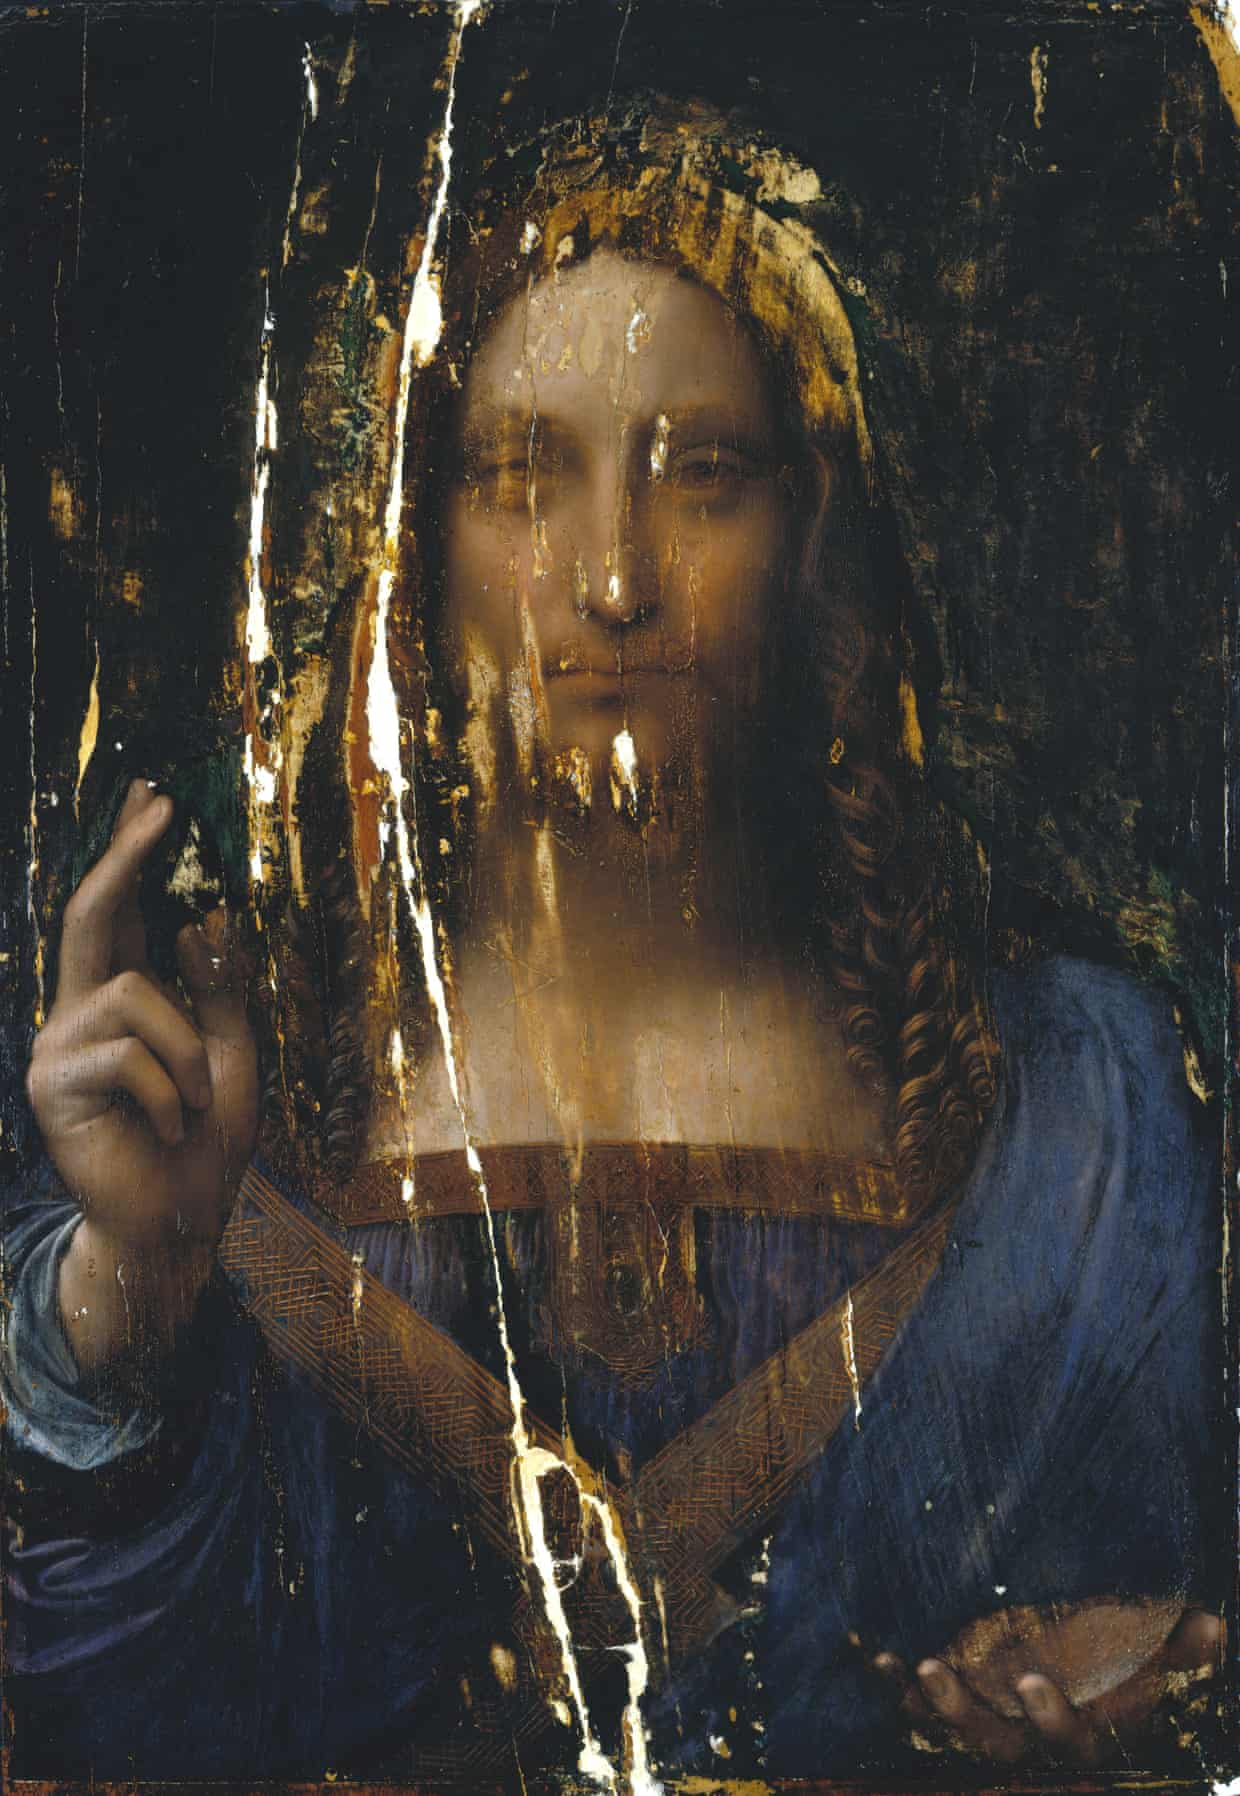 full view of the cleaned-up painting. Photograph- Courtesy Dianne Modestini : © 2011 Salvator Mundi LLC